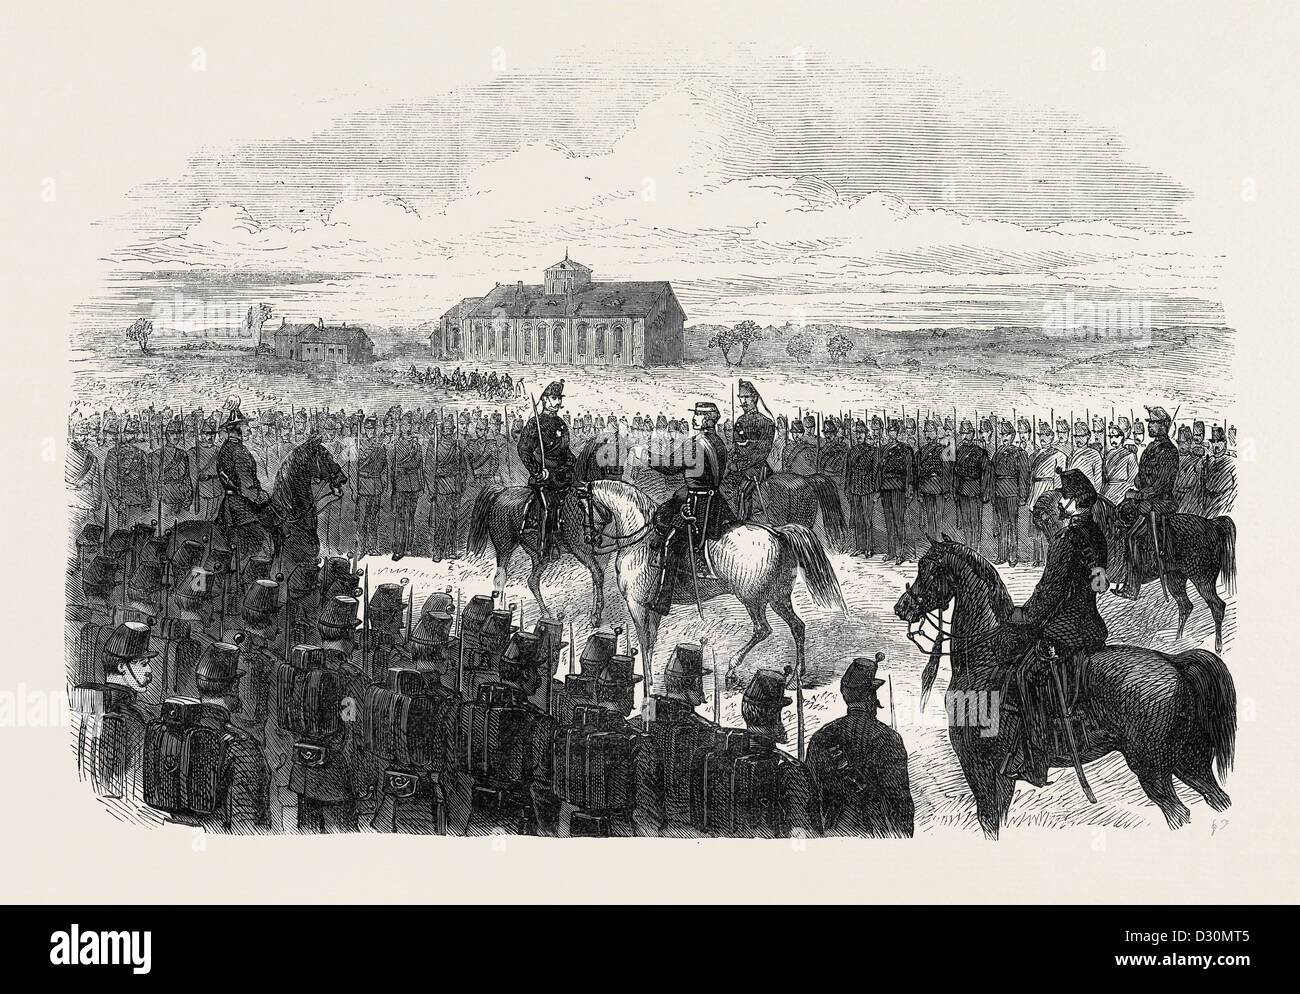 INSPECTION OF THE ESSEX RIFLES (MILITIA) AT COLCHESTER UK 1869 - Stock Image